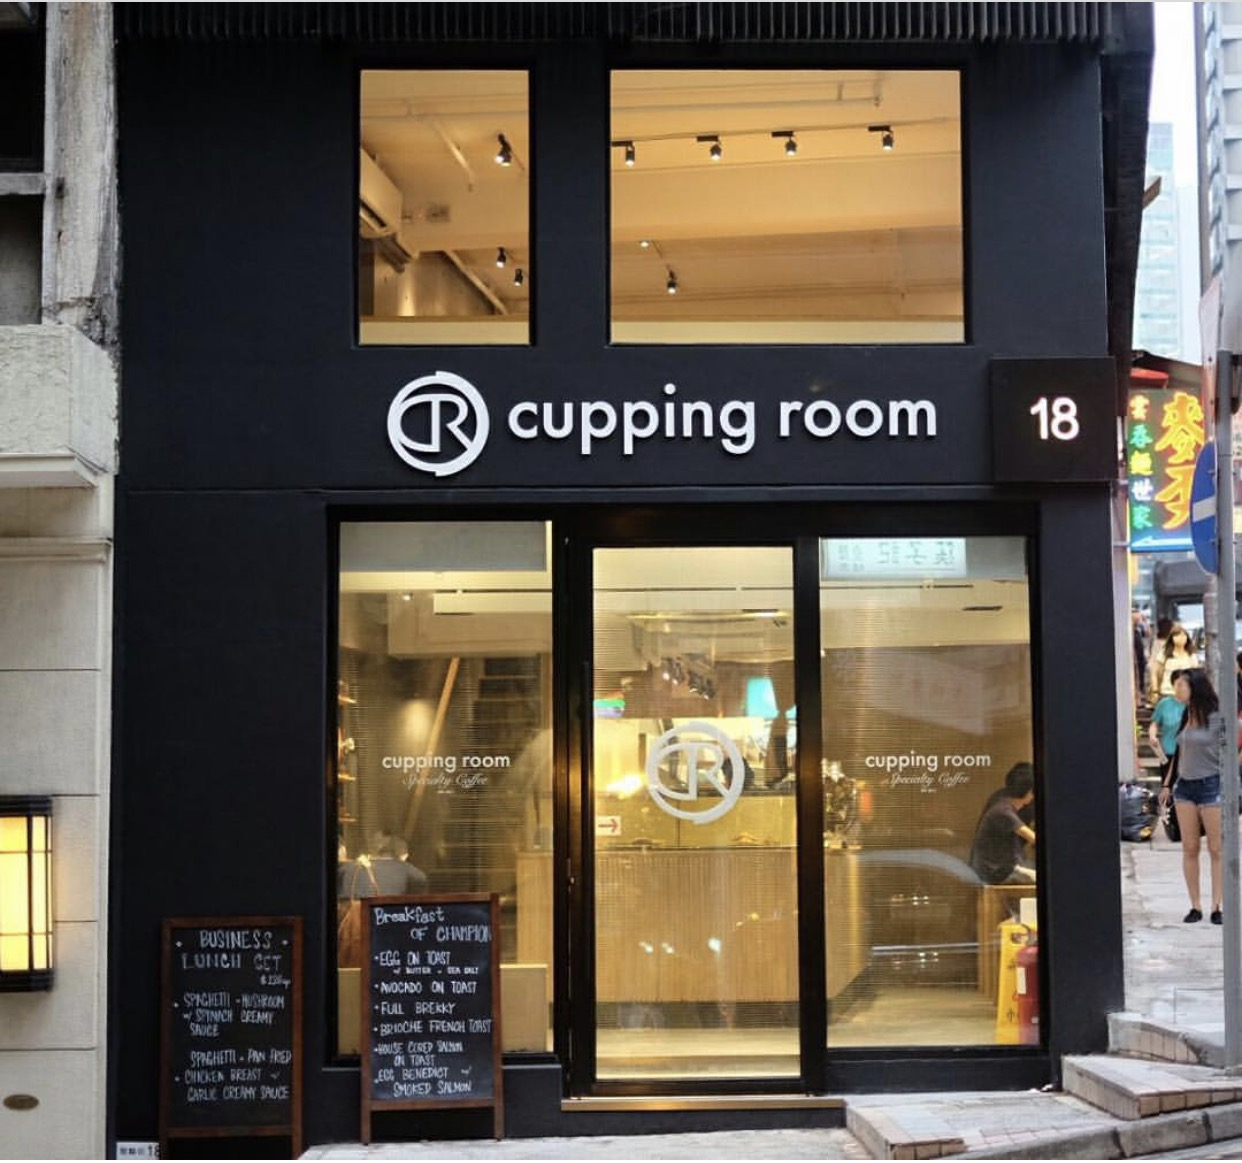 The Cupping Room